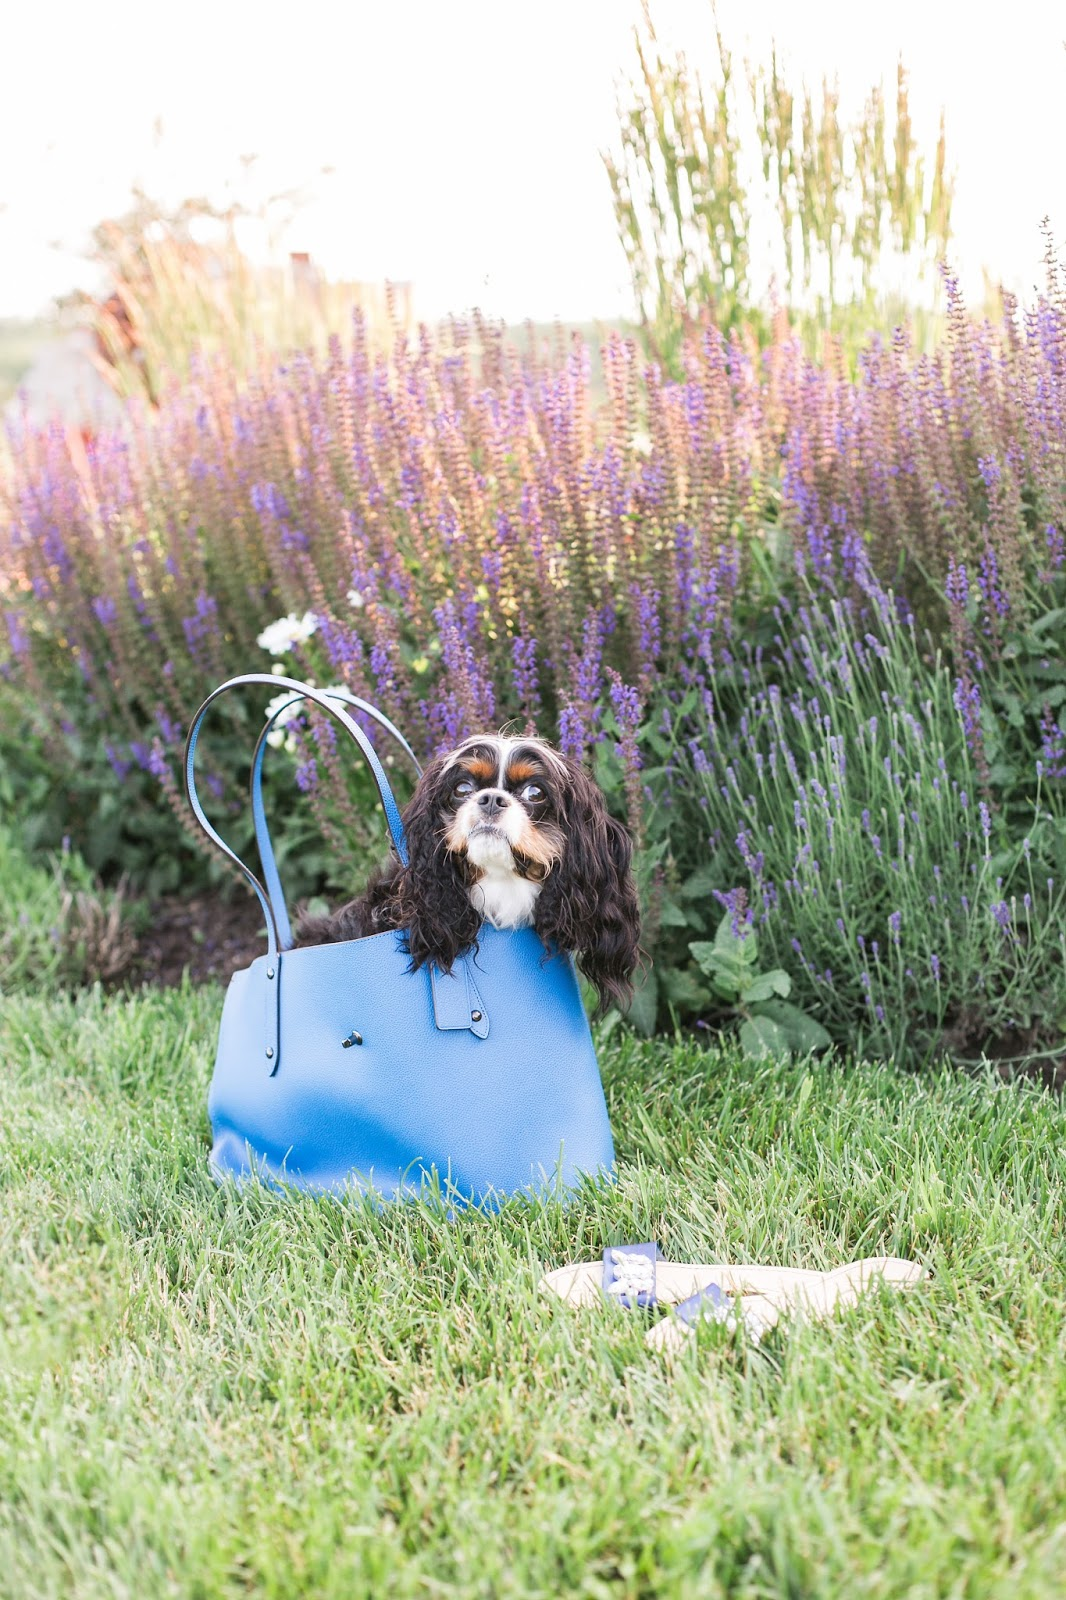 Bijuleni | Cavalier King Charles Spaniel Puppy in Coach Tote